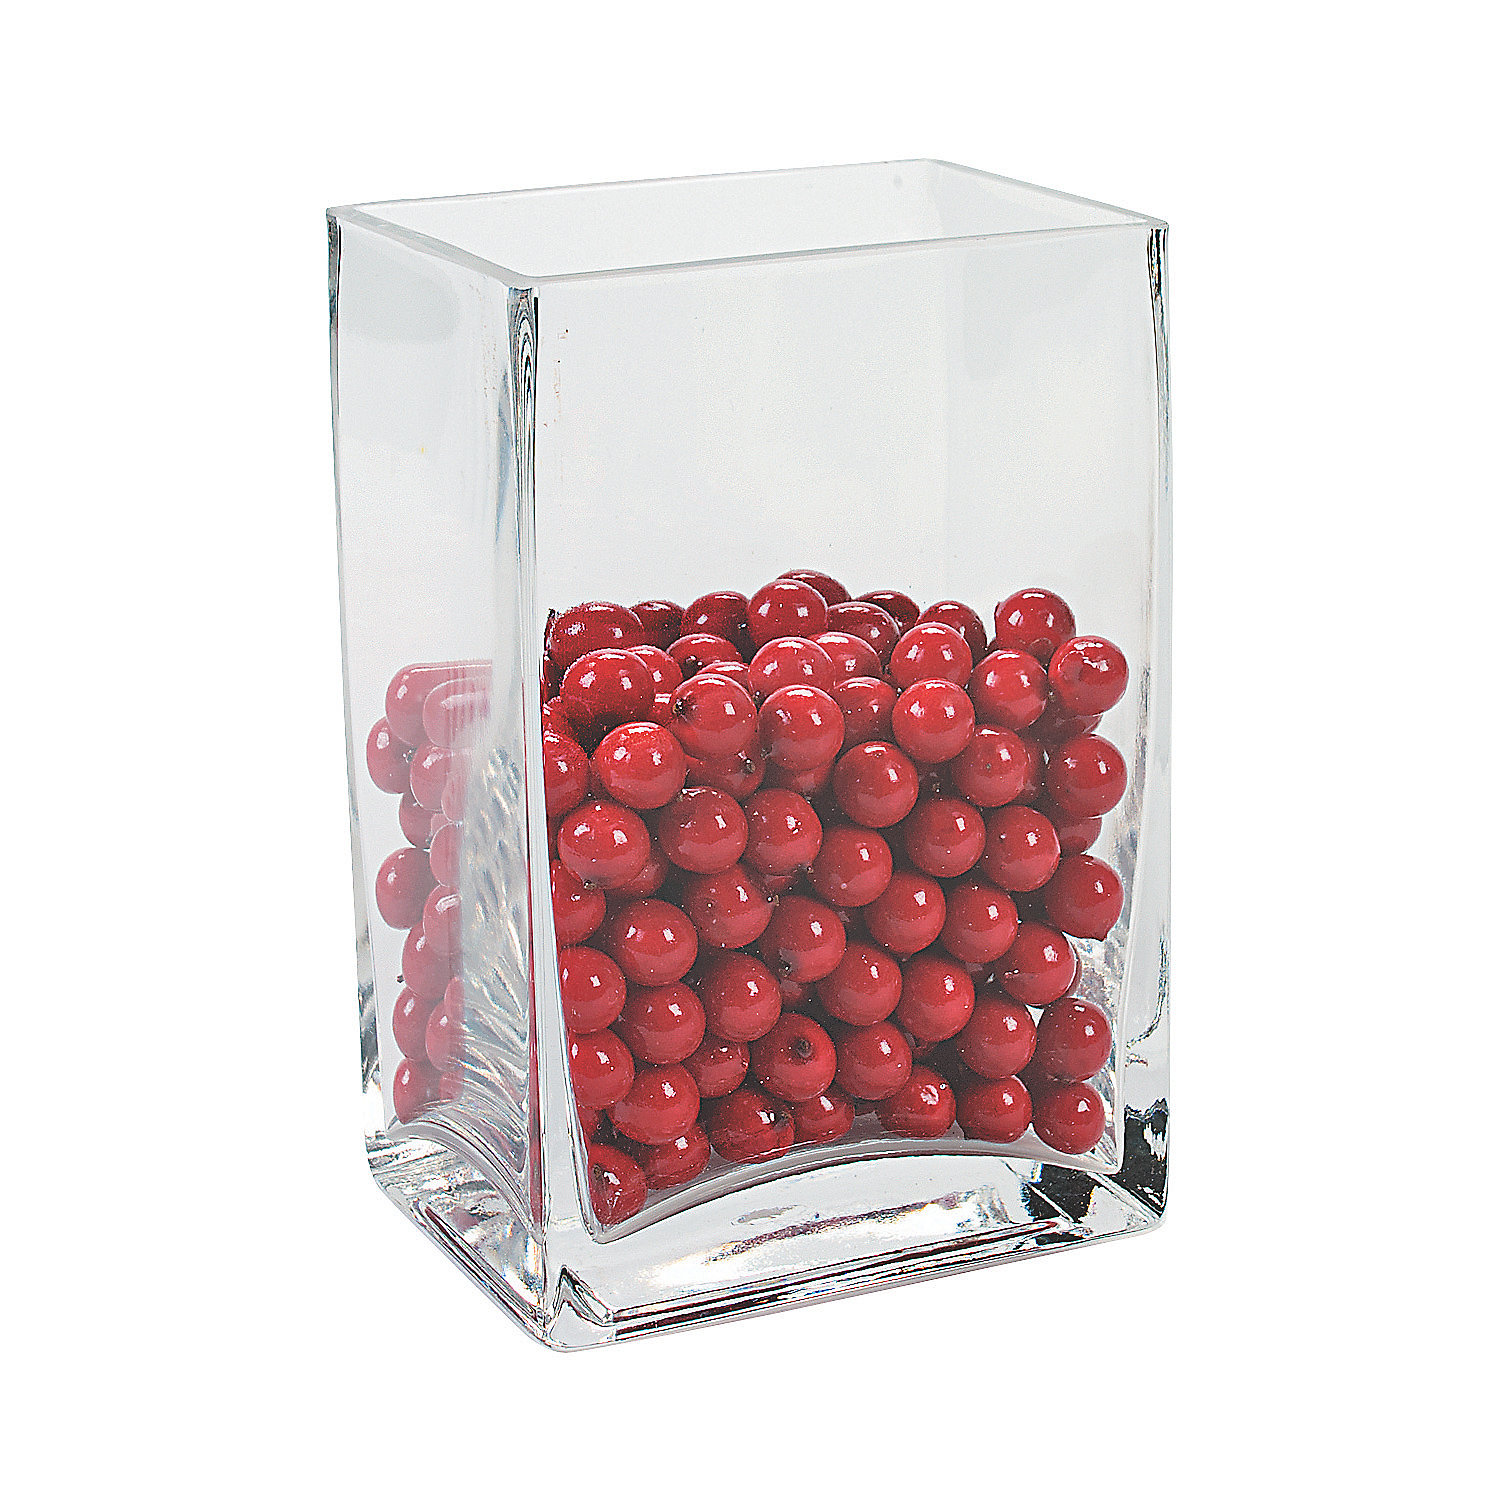 Home decor accents holiday decorations accessories for Artificial cranberries decoration